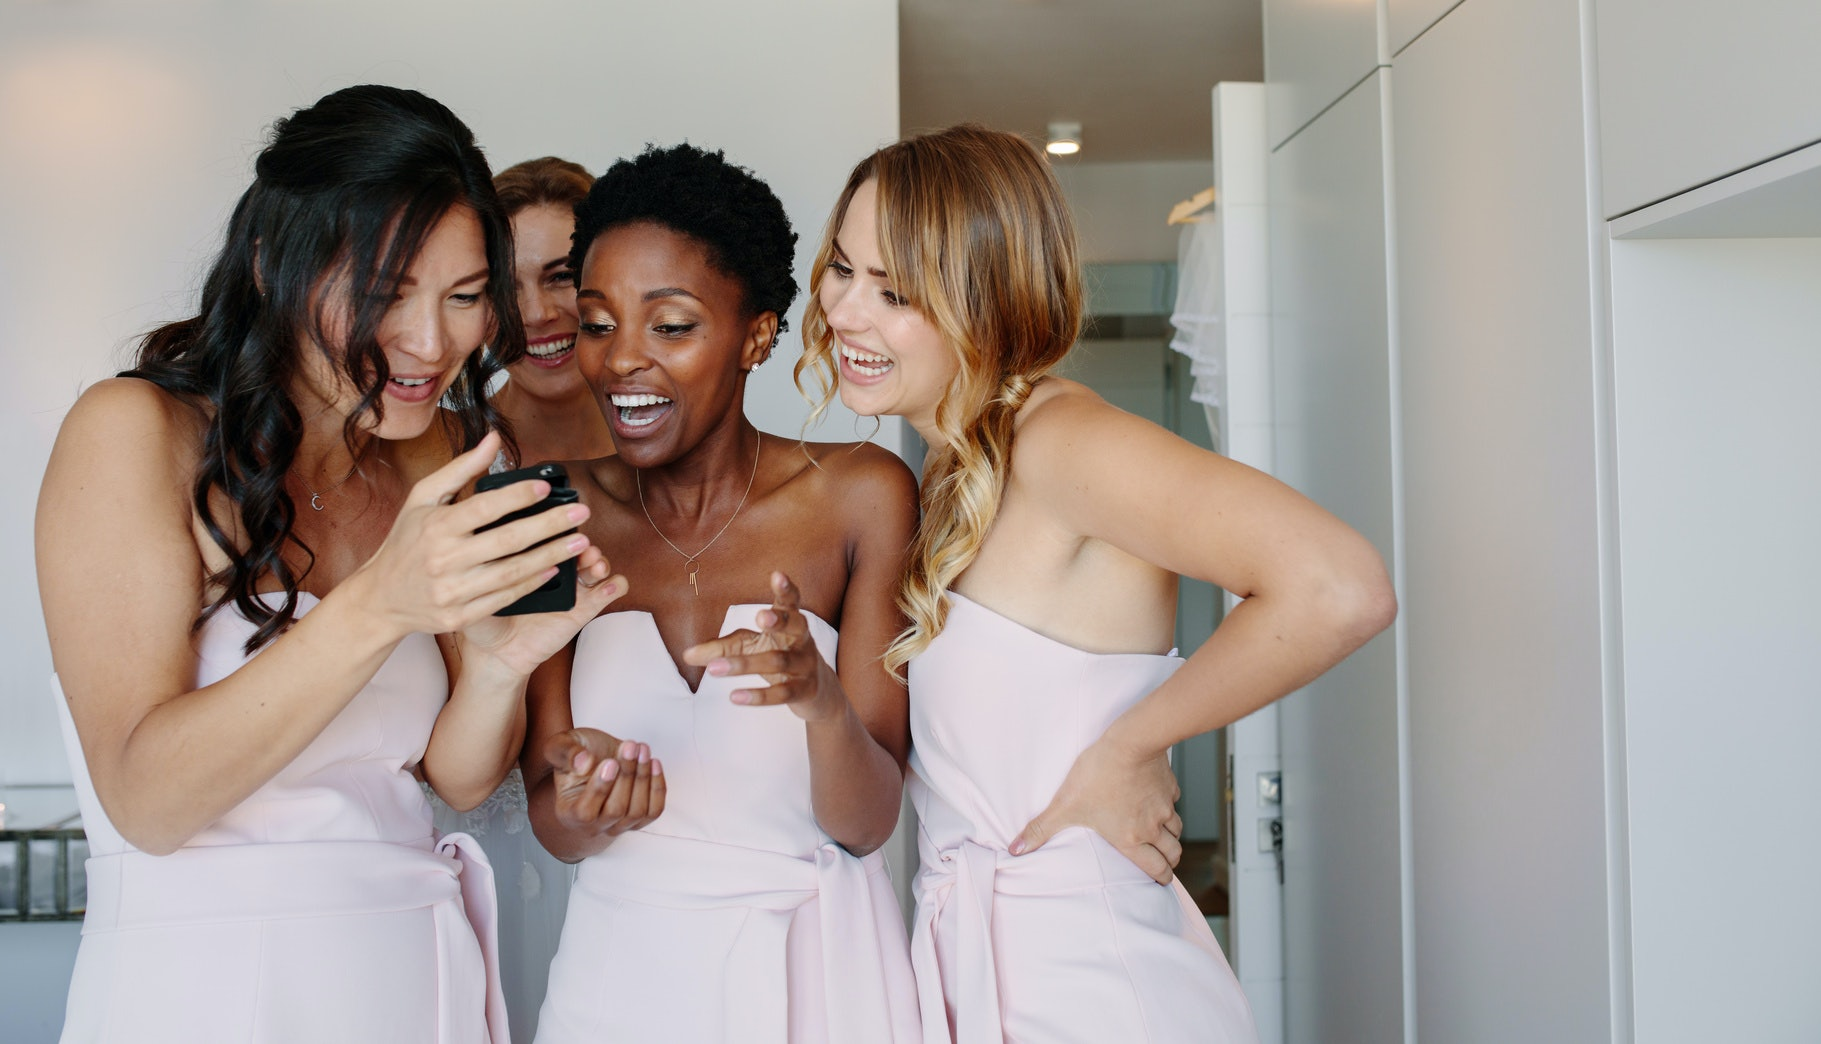 68 Group Chat Names For The Bridal Party Because There S A Whole Latte Love There